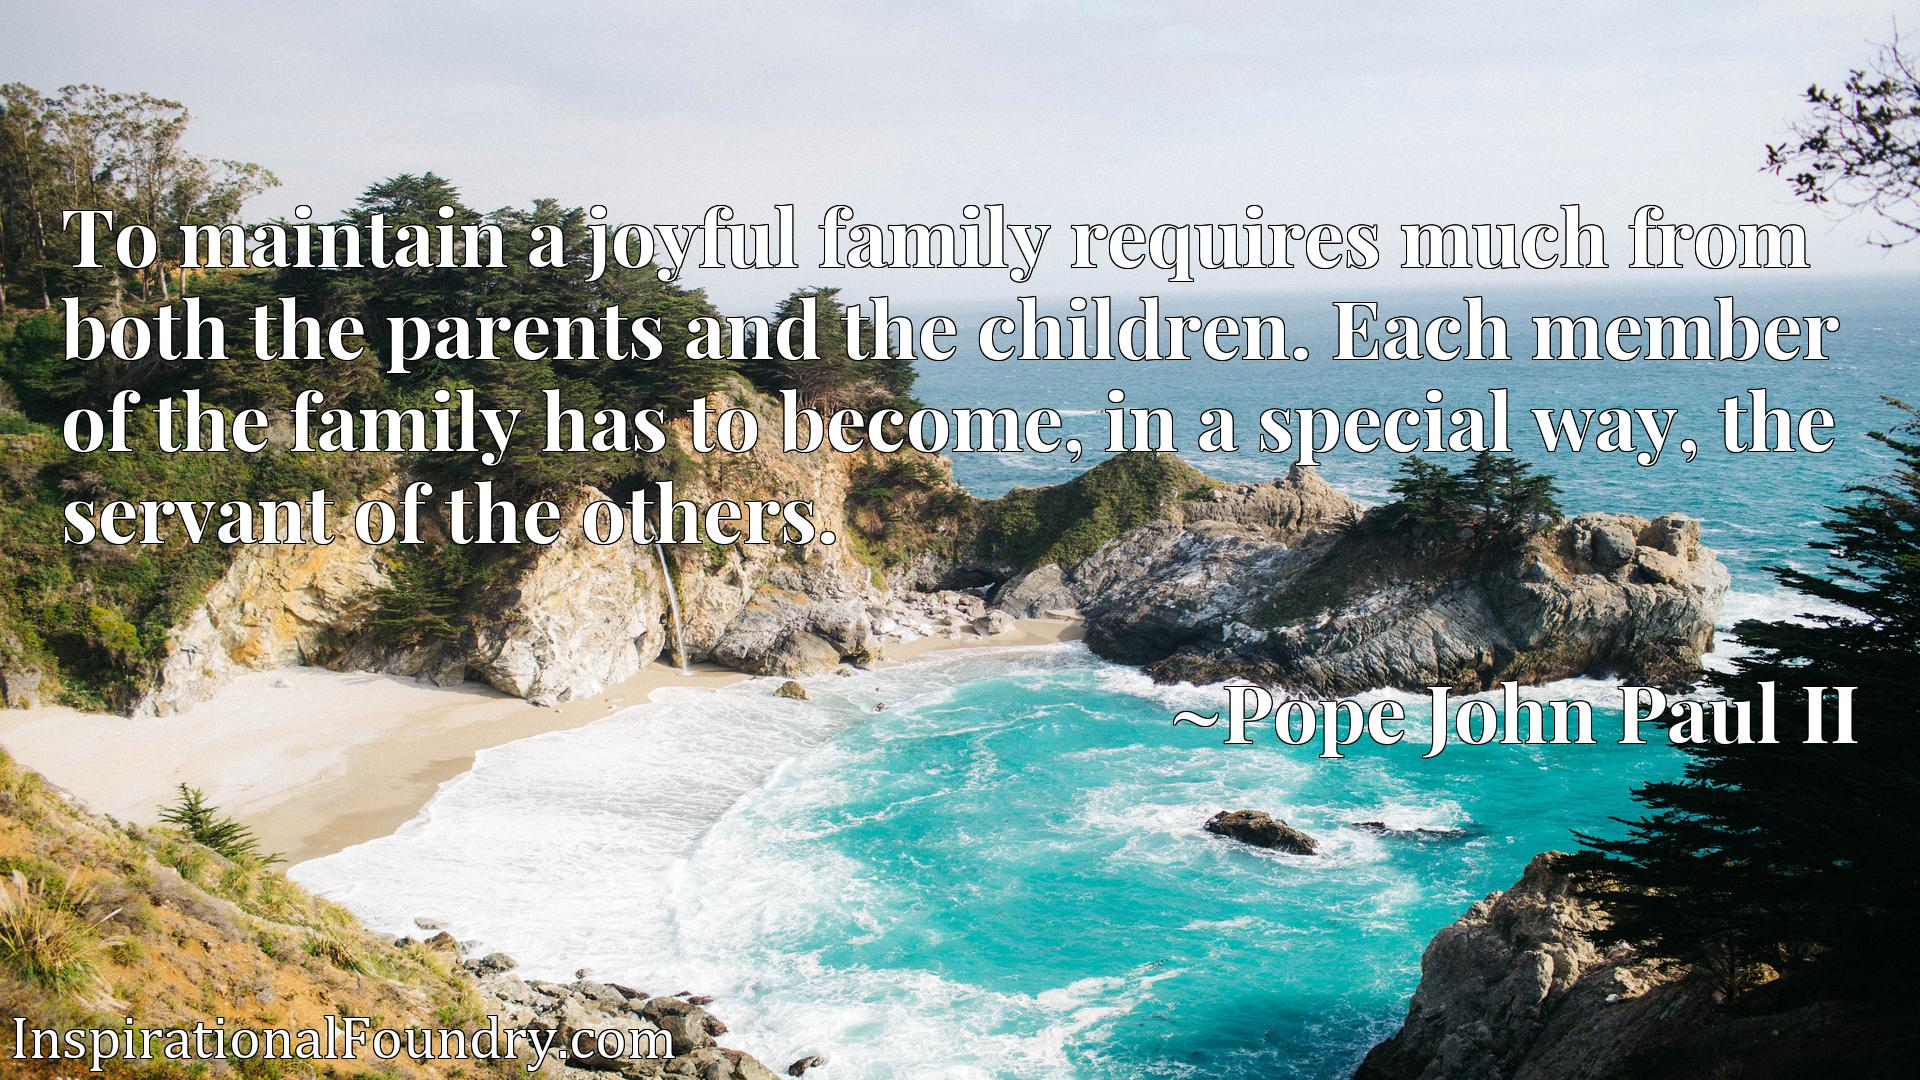 To maintain a joyful family requires much from both the parents and the children. Each member of the family has to become, in a special way, the servant of the others.